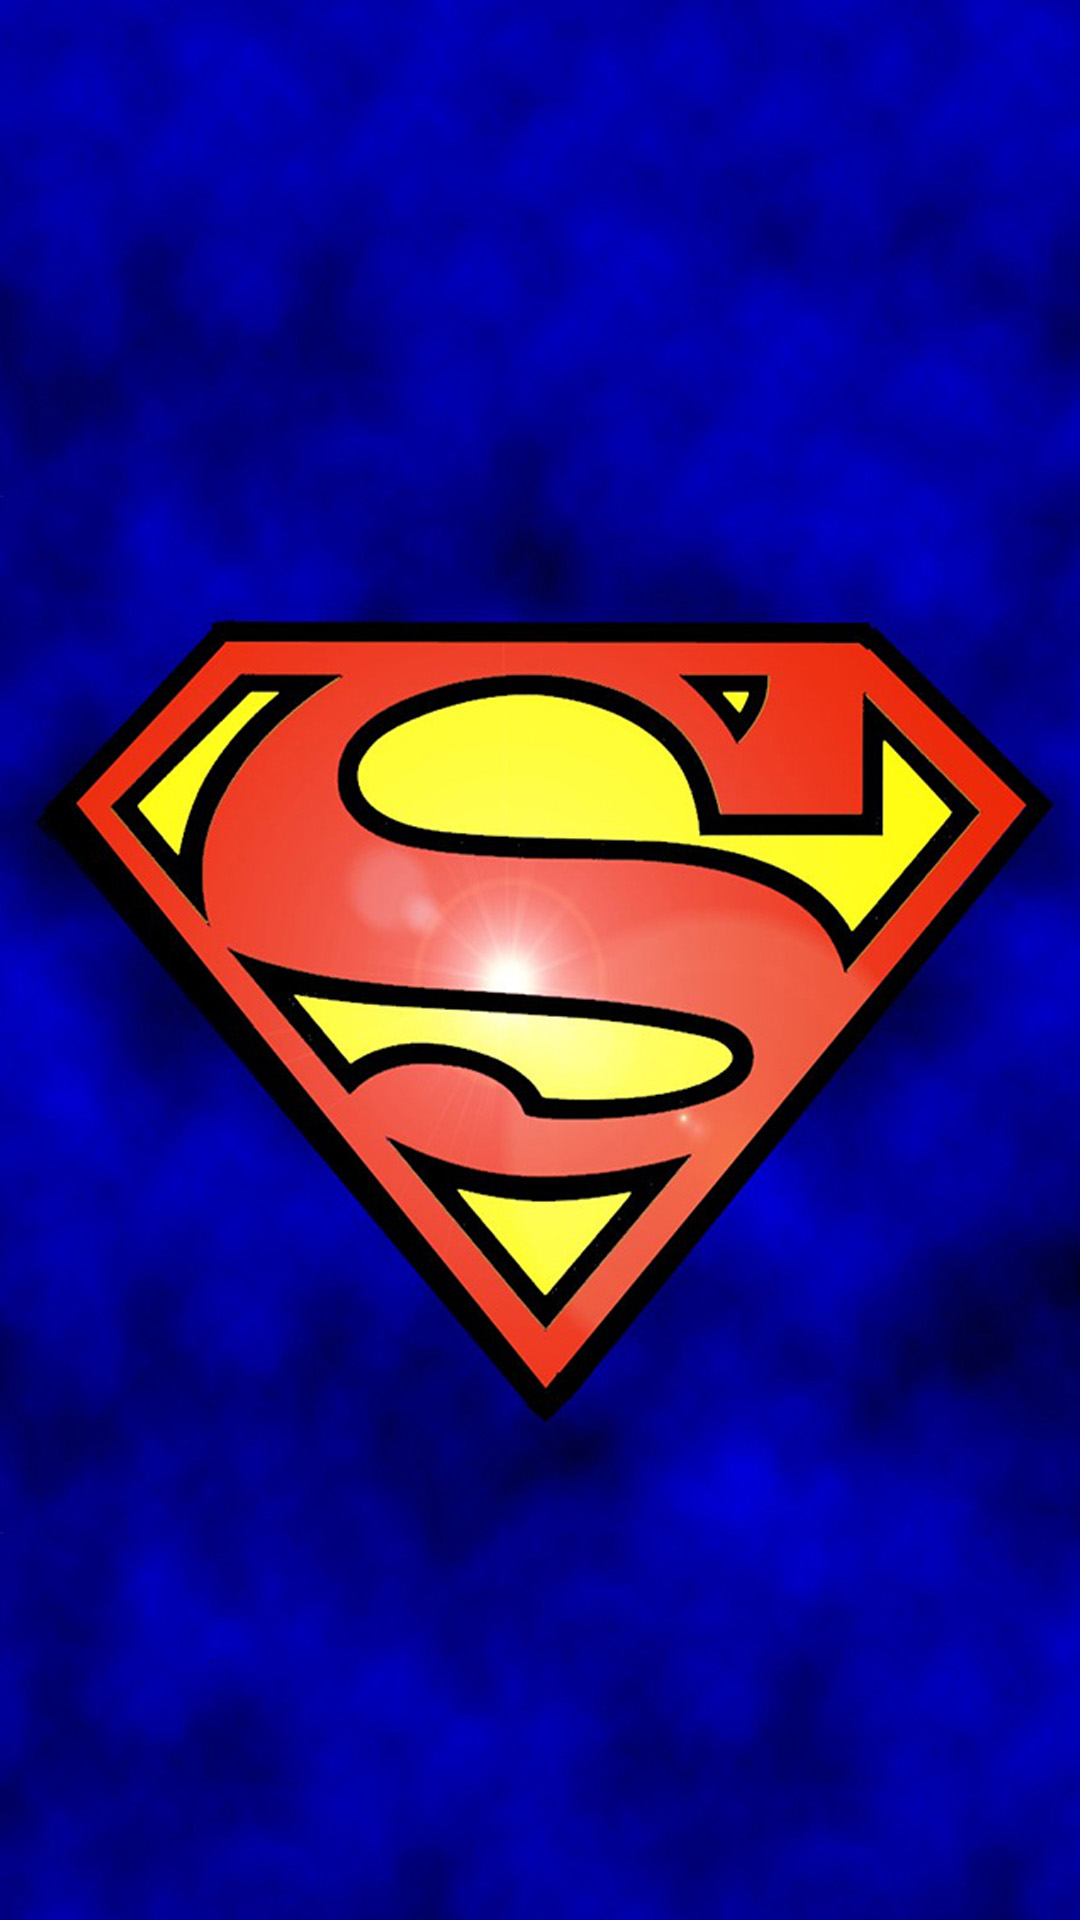 Funny Superman Logo iPhone 6 Wallpaper Download iPhone Wallpapers 1080x1920